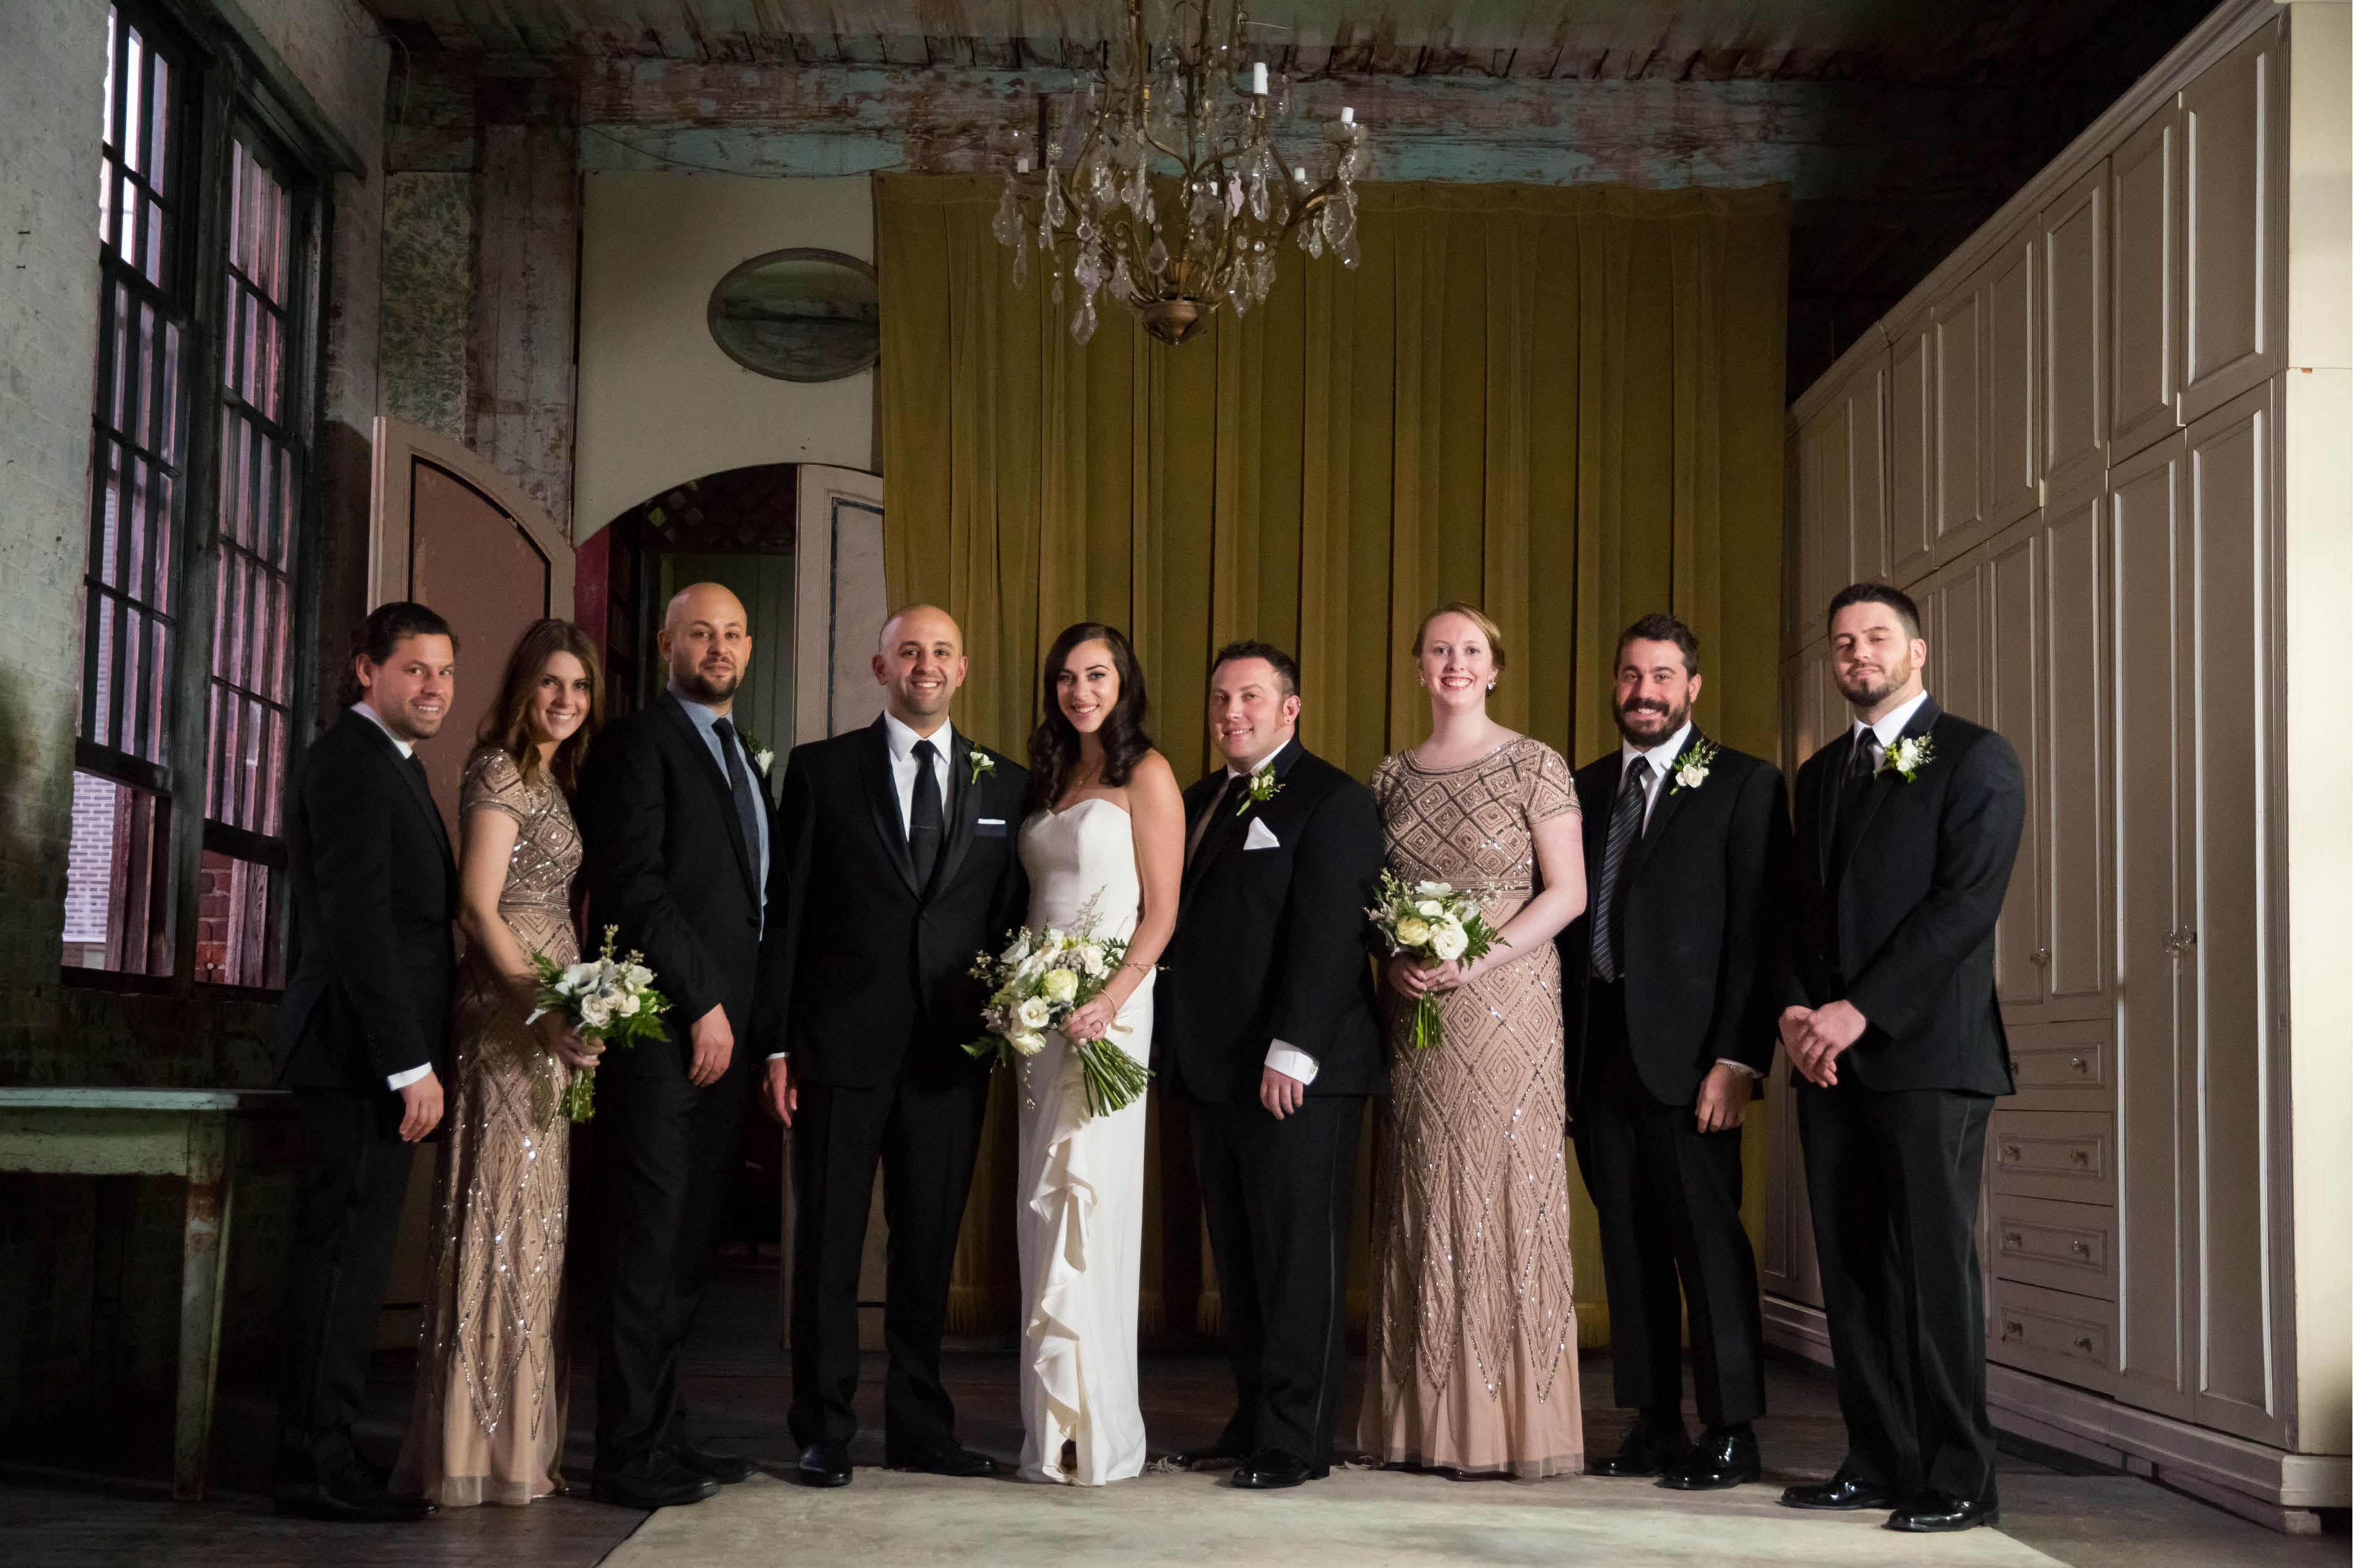 Emma_cleary_photography Metropolitan building wedding18